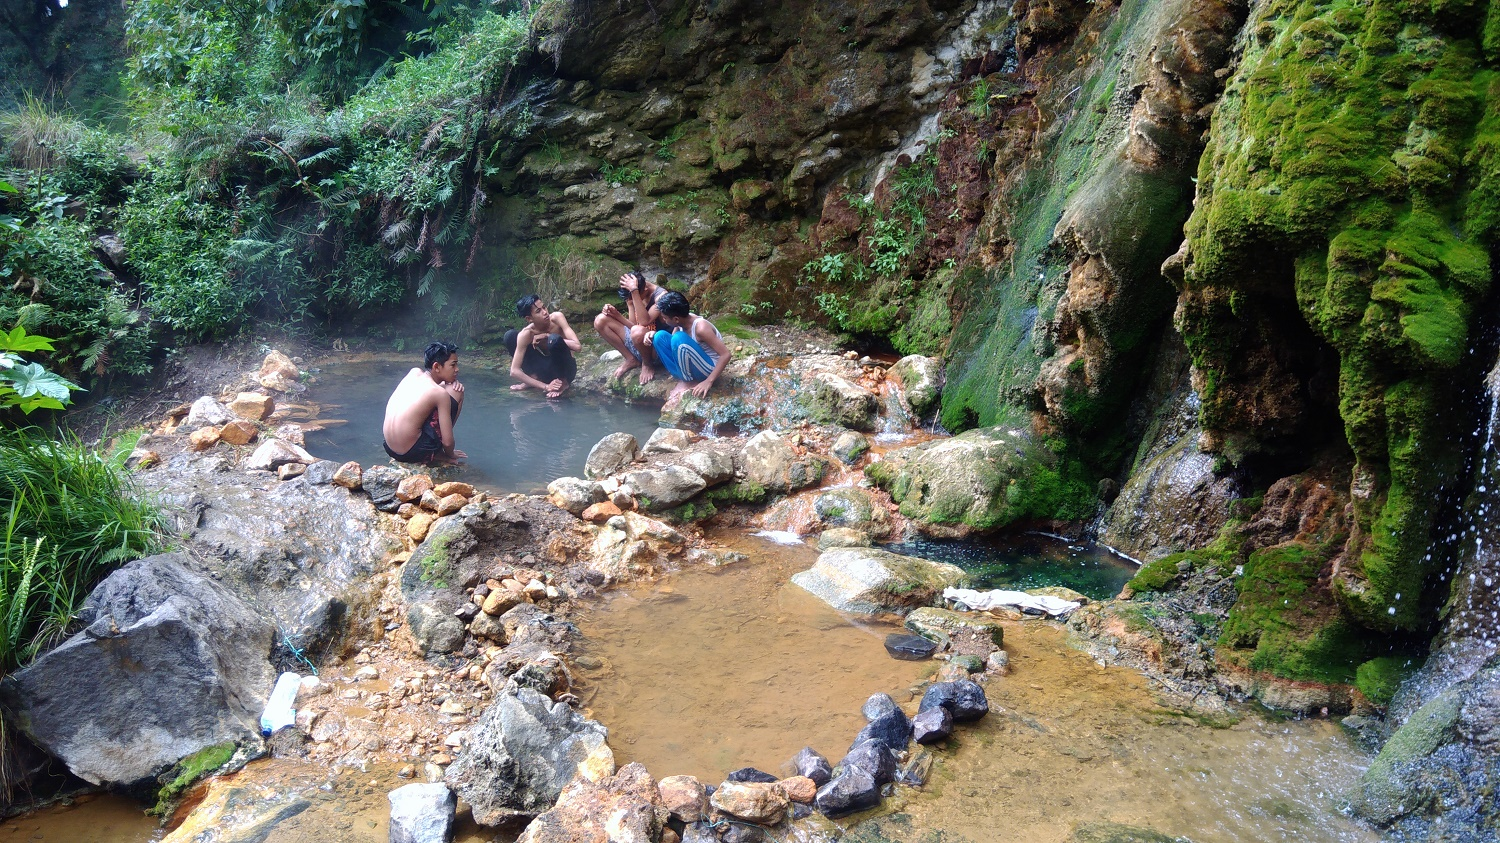 gua susu natural hot spring in rinjani lombok